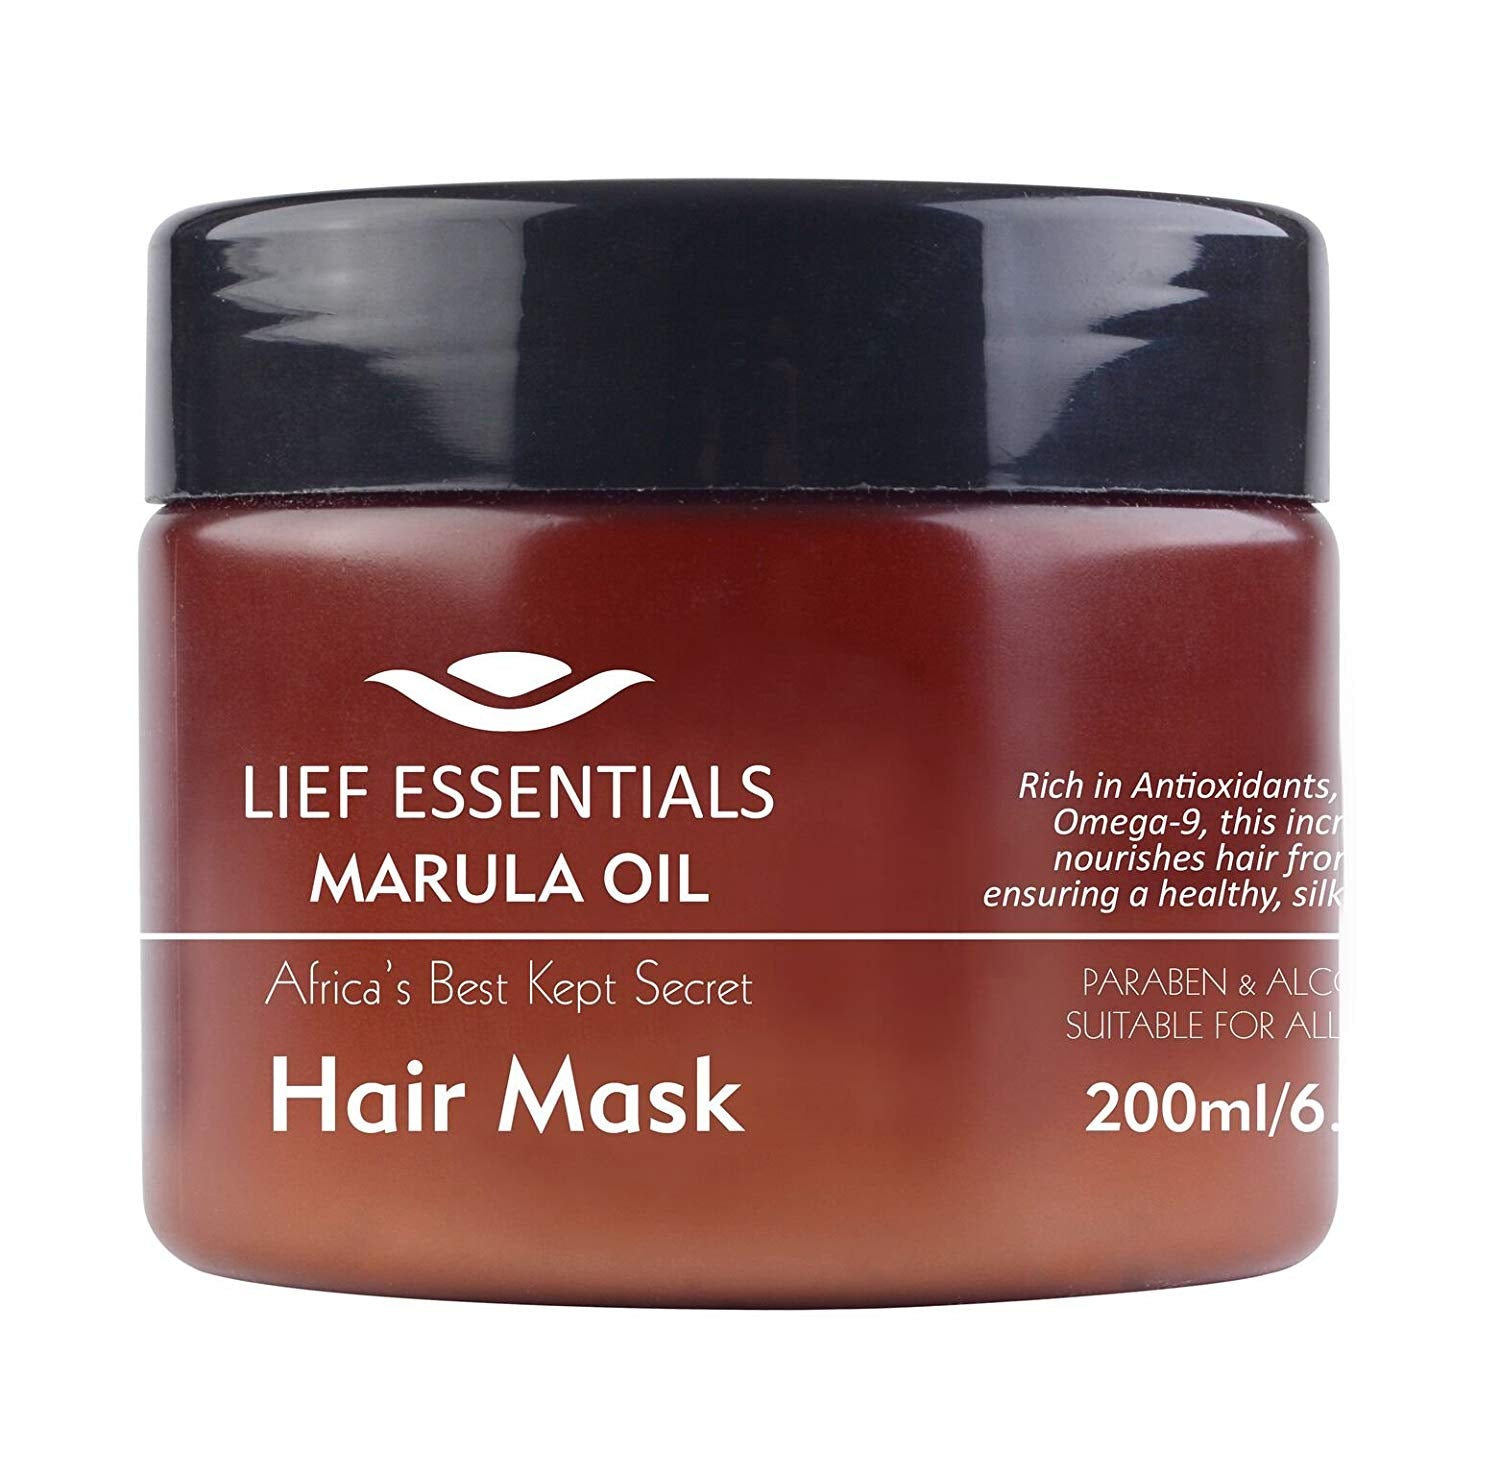 LIEF ESSENTIALS Hair Mask with Pure Organic African Marula Oil. Suitable For All Hair Types. Cruelty-free. 200ml